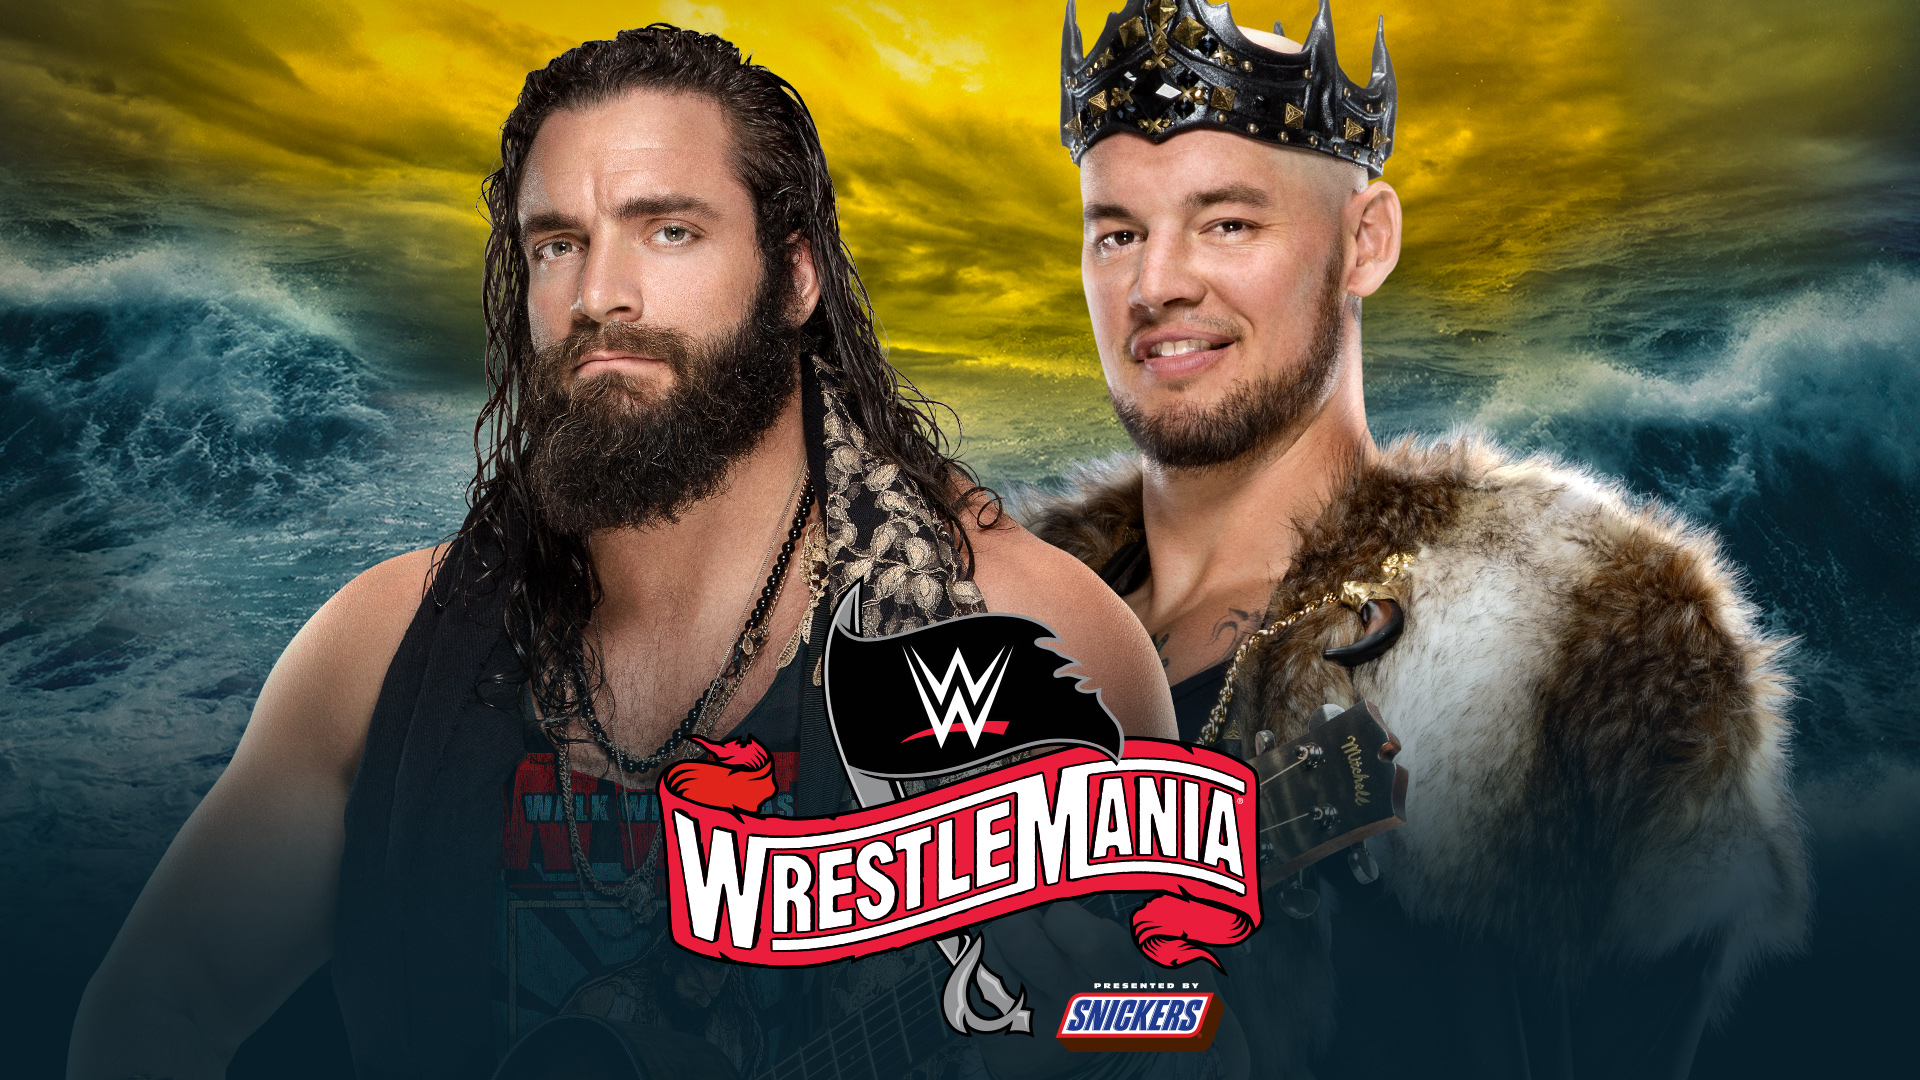 WWE Wrestlemania 36 Full Match Card, Preview & Predictions 14